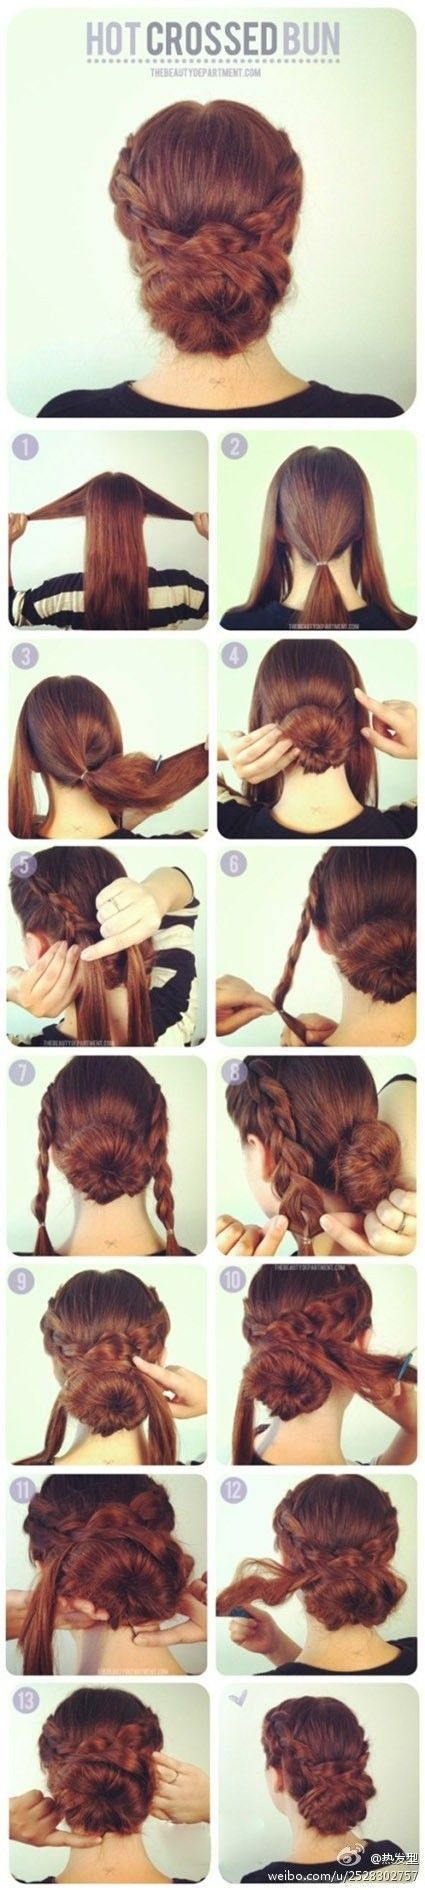 How to make a hot crossed bun. You could do this with a sock bun to make it fuller if you have fine or thin hair.